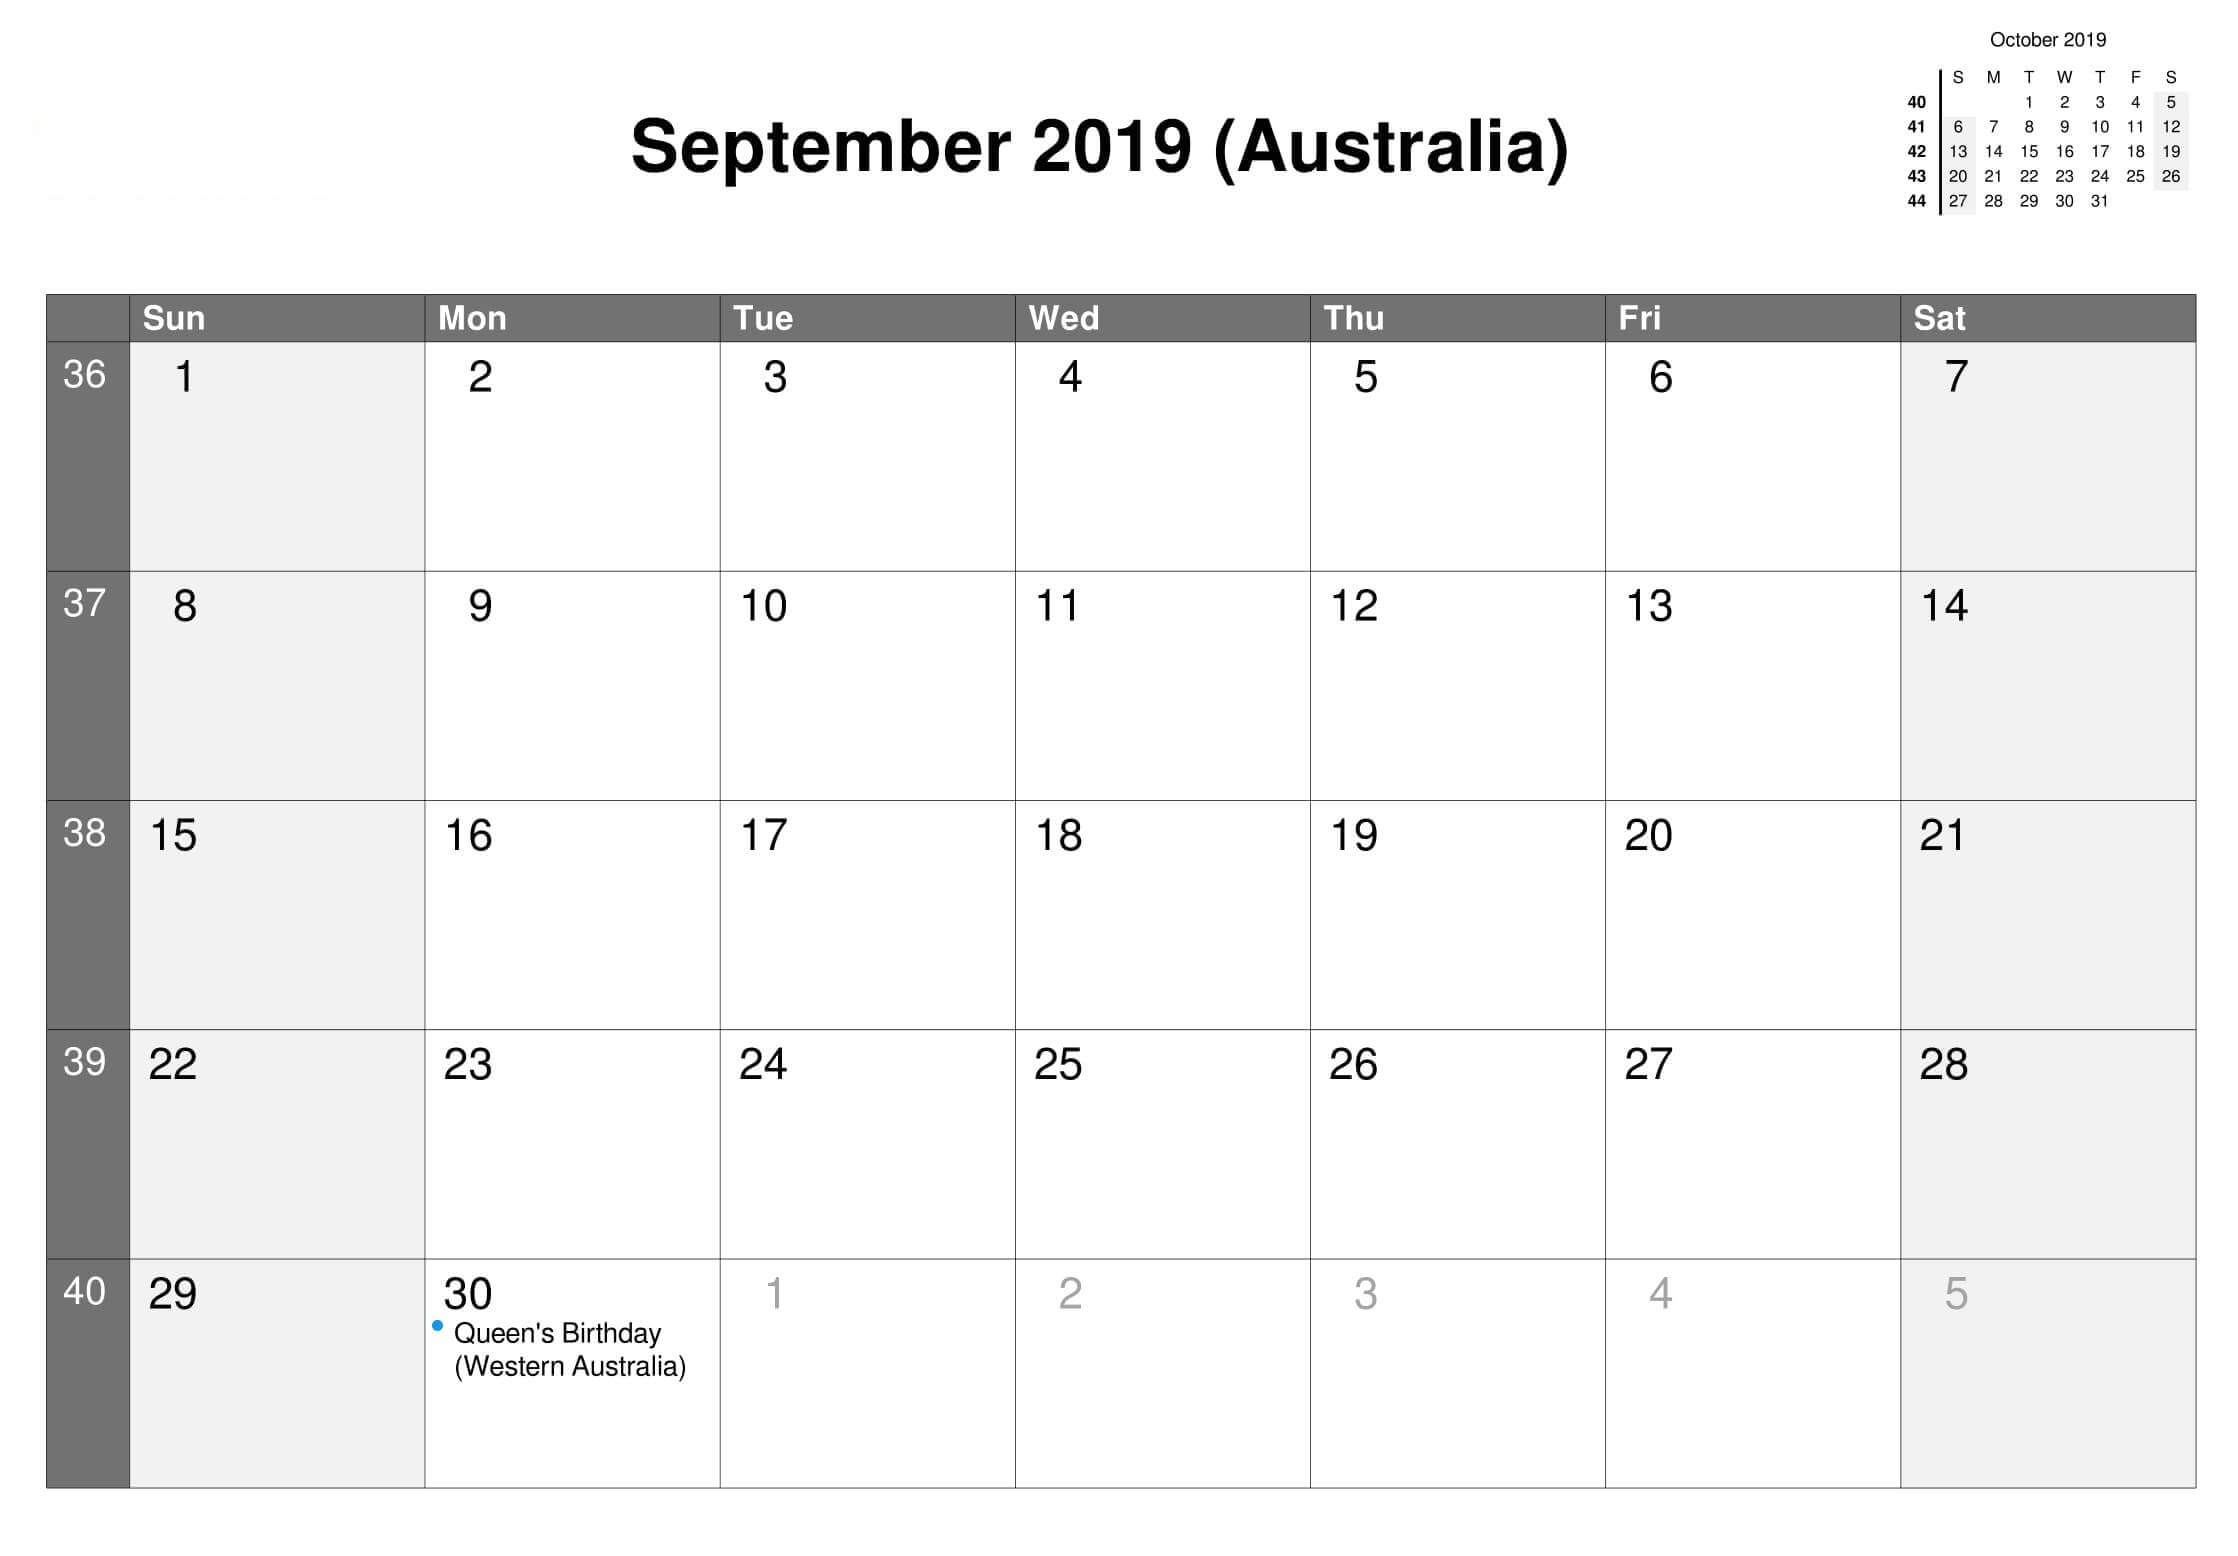 September 2019 Australia Holidays Calendar